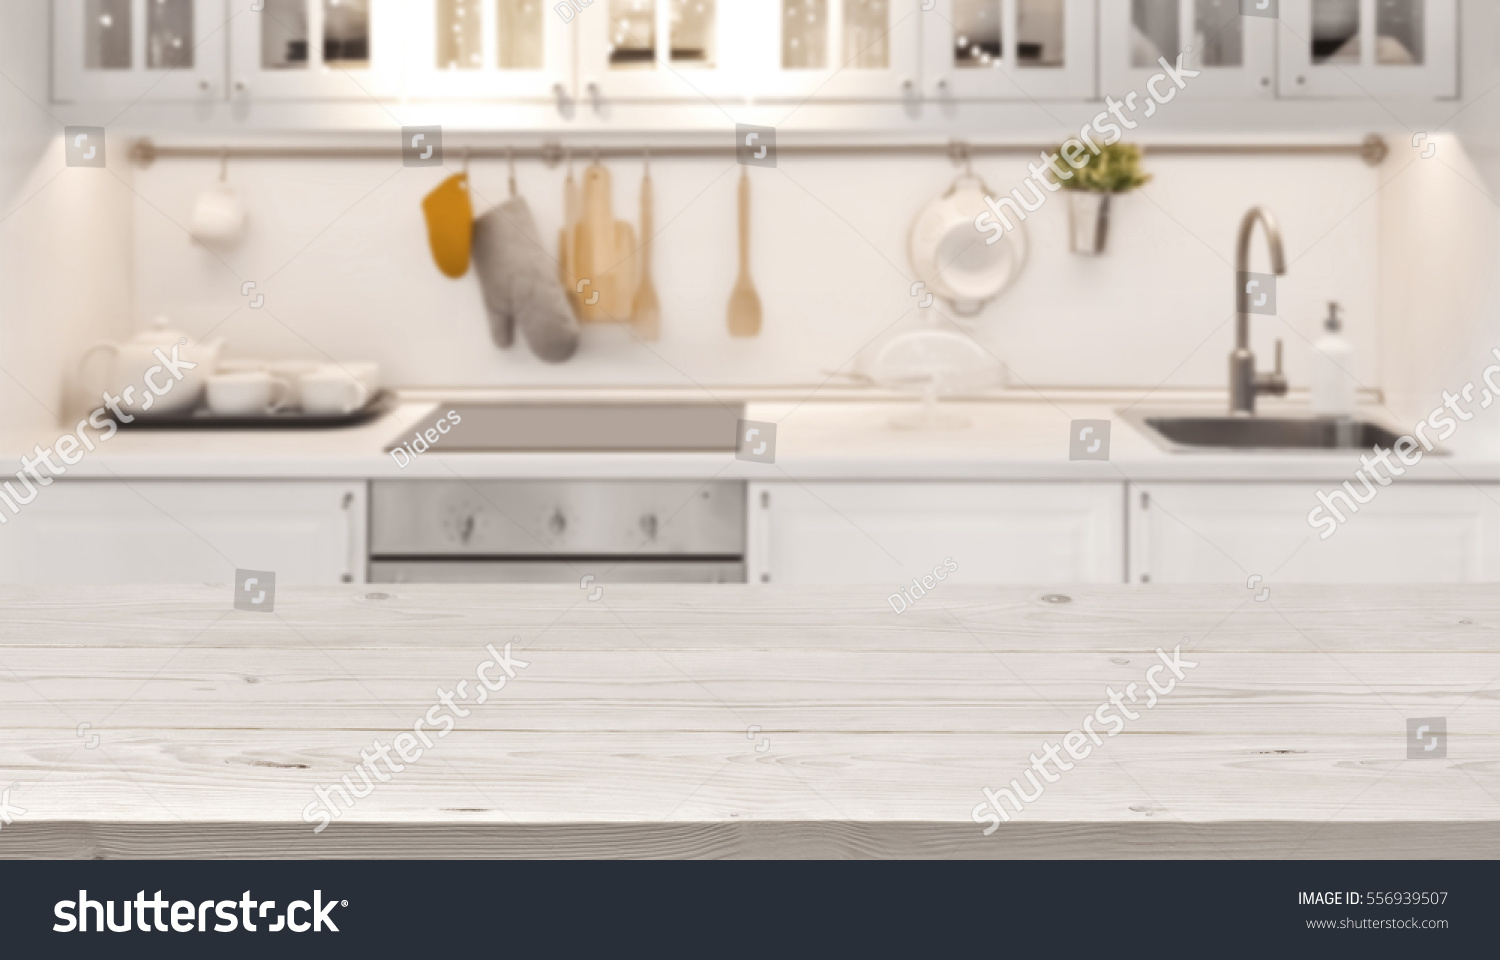 Kitchen Table Top : Kitchen table top blur background cooking stock photo